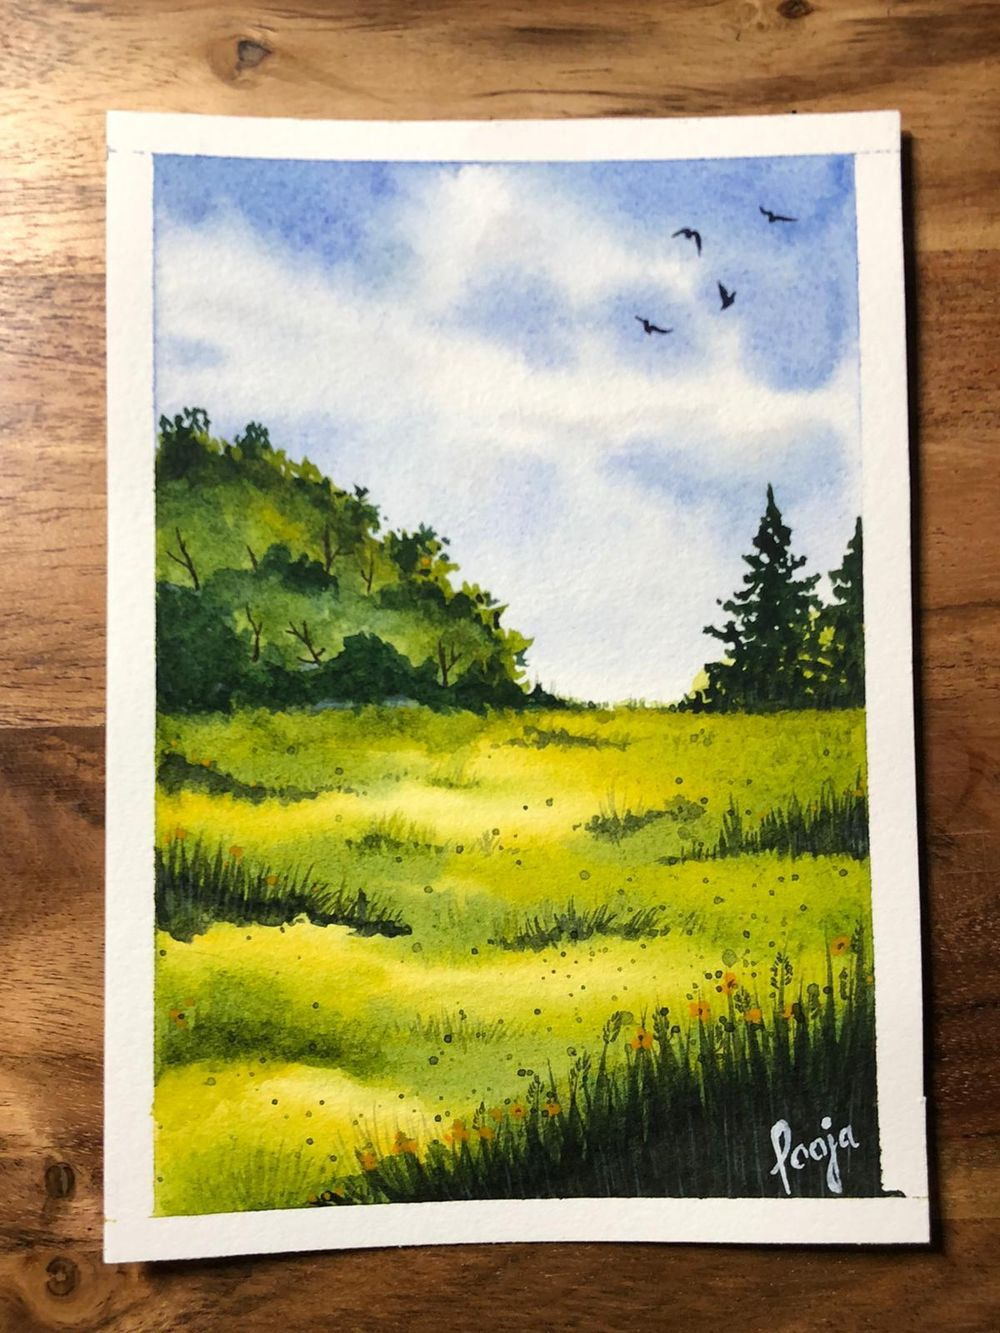 Green Watercolor Landscapes - Jan'21 - image 2 - student project